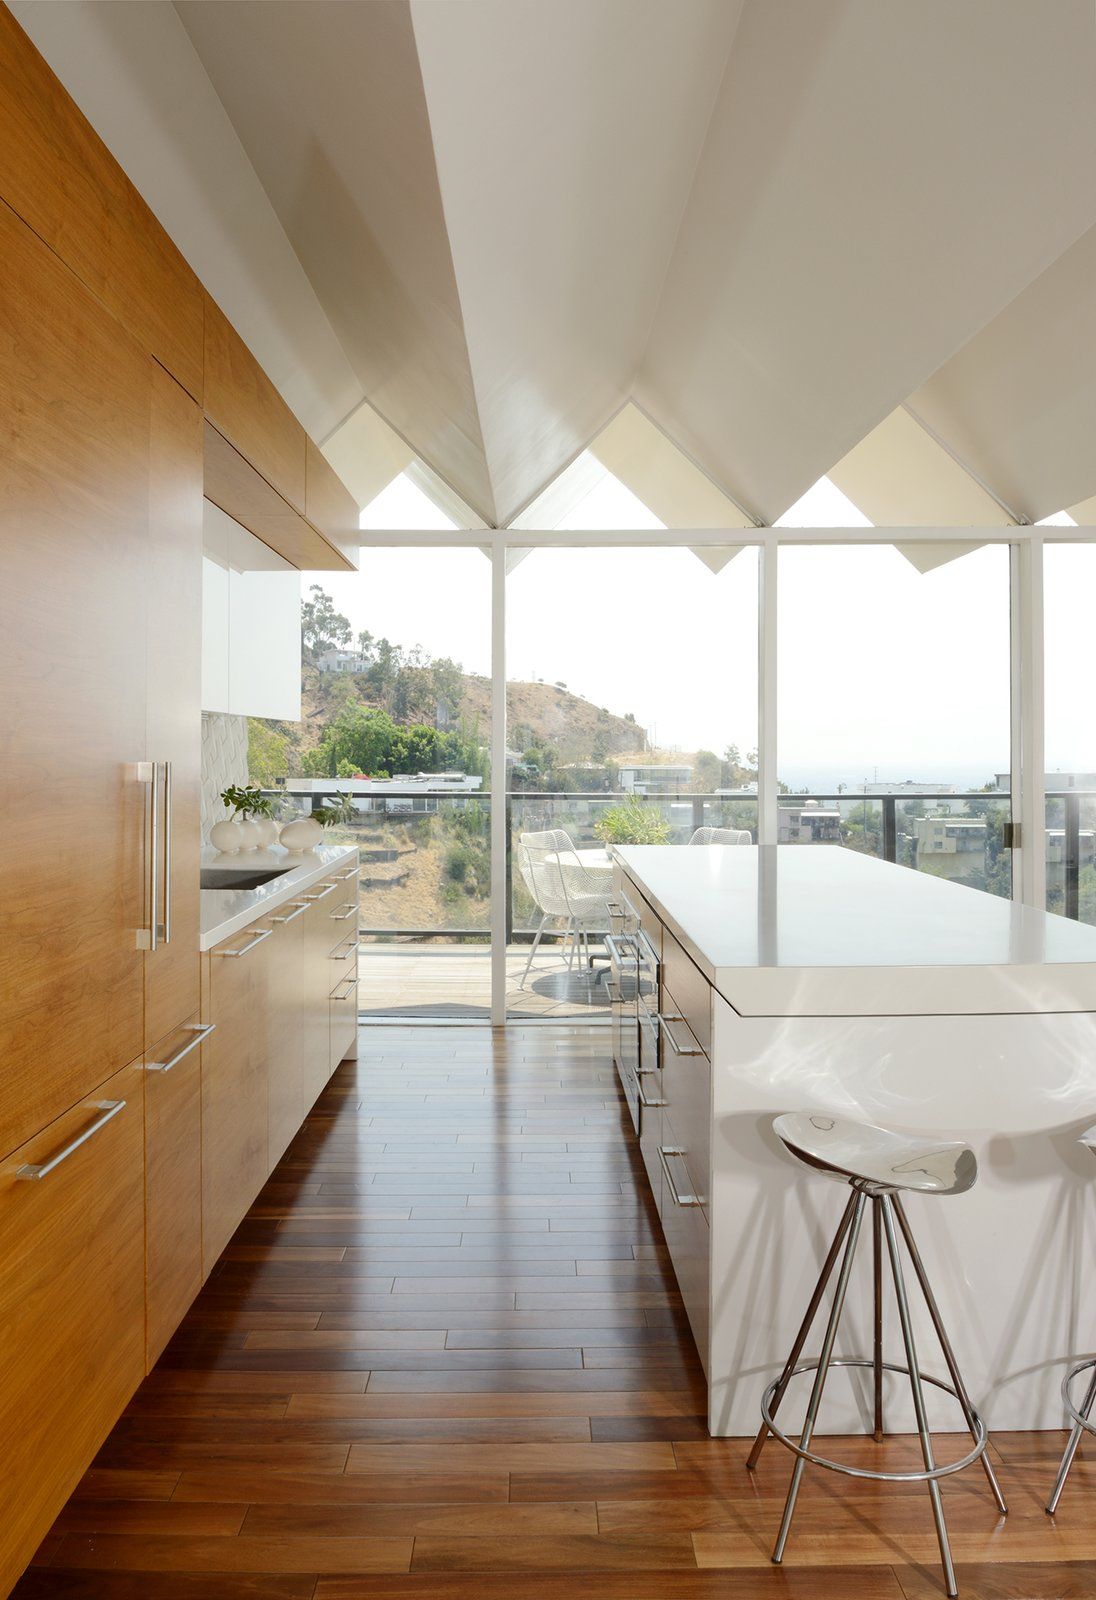 Kitchen, Medium Hardwood, Engineered Quartz, Refrigerator, White, Undermount, and Wood The pleated roofline adds light and shadow to the bright and airy interiors.   Best Kitchen Refrigerator Undermount Photos from Own This Unique Hollywood Hills Midcentury For $3.2M